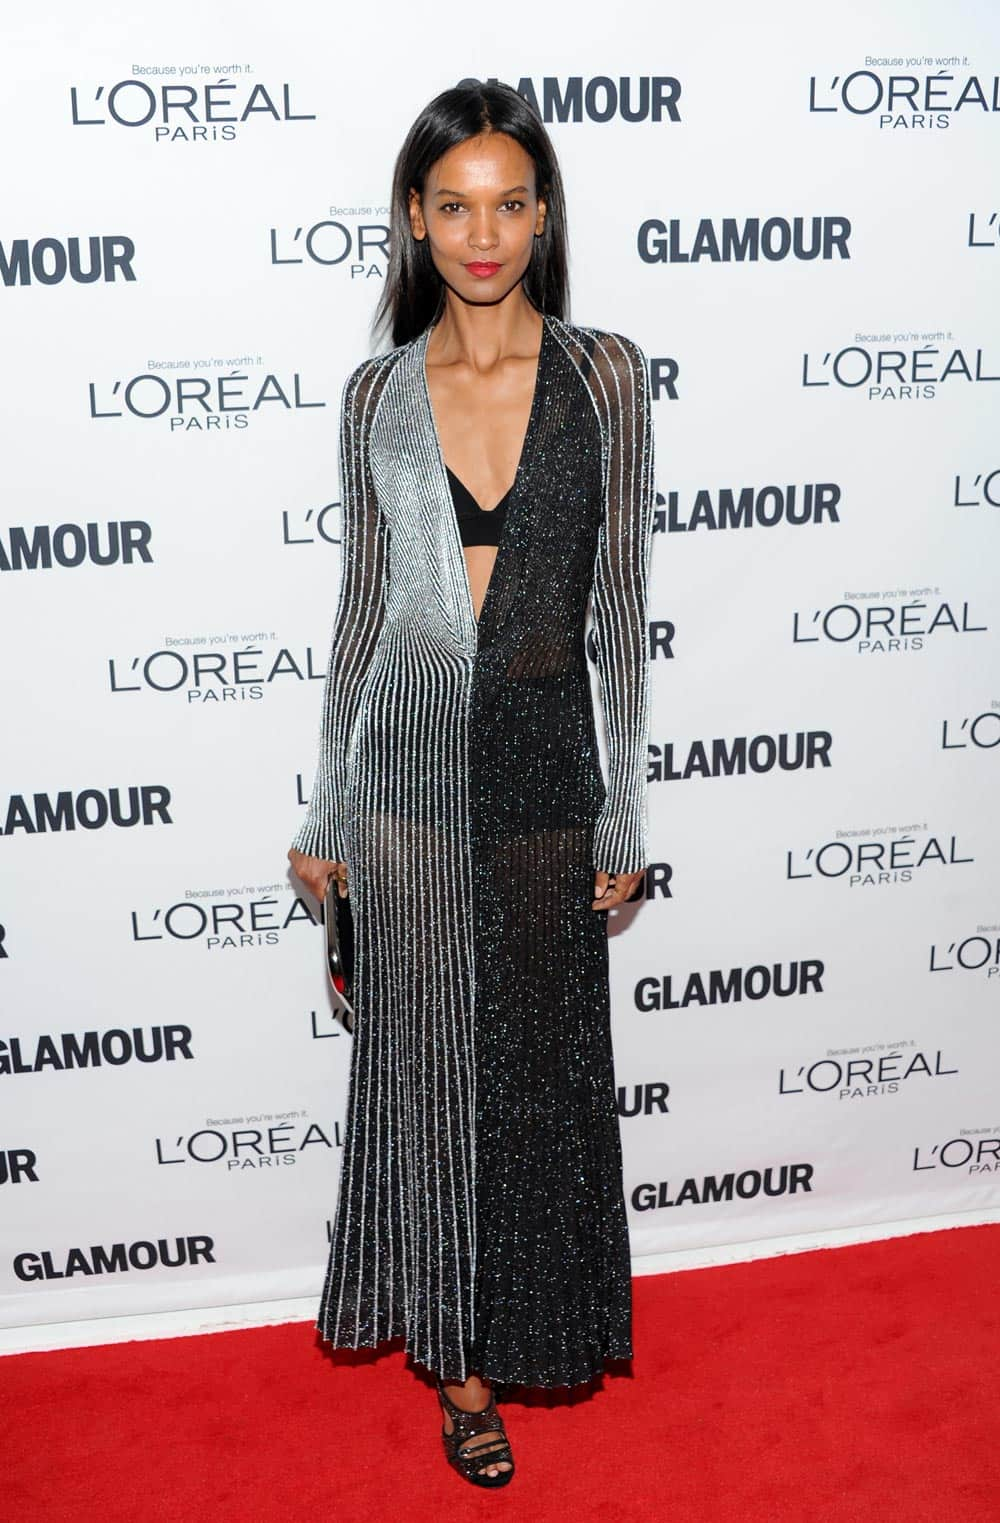 Honoree Liya Kebede attends the 23rd Annual Glamour Women of the Year Awards hosted by Glamour Magazine at Carnegie Hall, in New York.